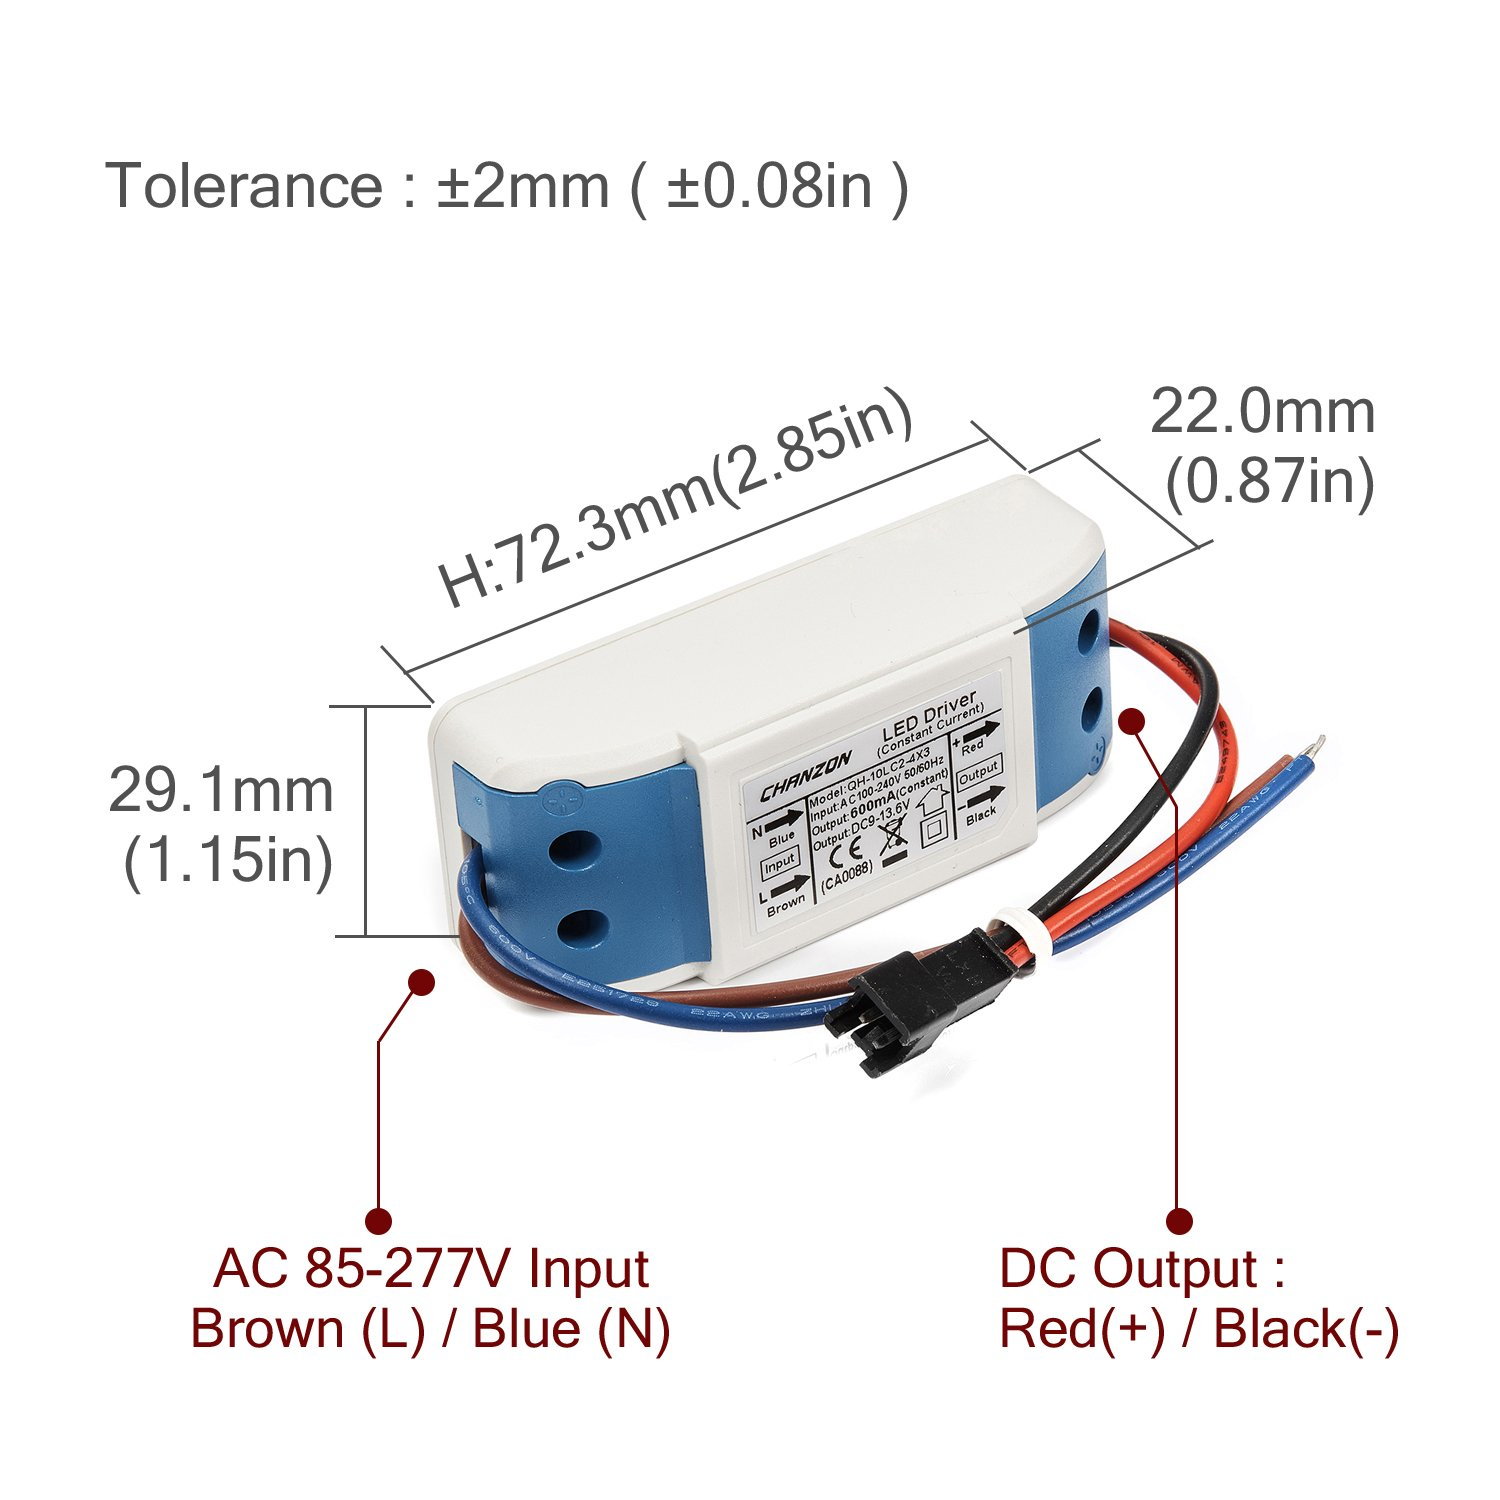 Chanzon Led Driver 600ma Constant Current Output 18v 34v In 85 12 Volt Dc Dimmer Wiring Diagram Free Picture 277v Ac 6 10 X3w 18w 20w 21w 24w 27w 30w Power Supply 600 Ma Lighting Transformer